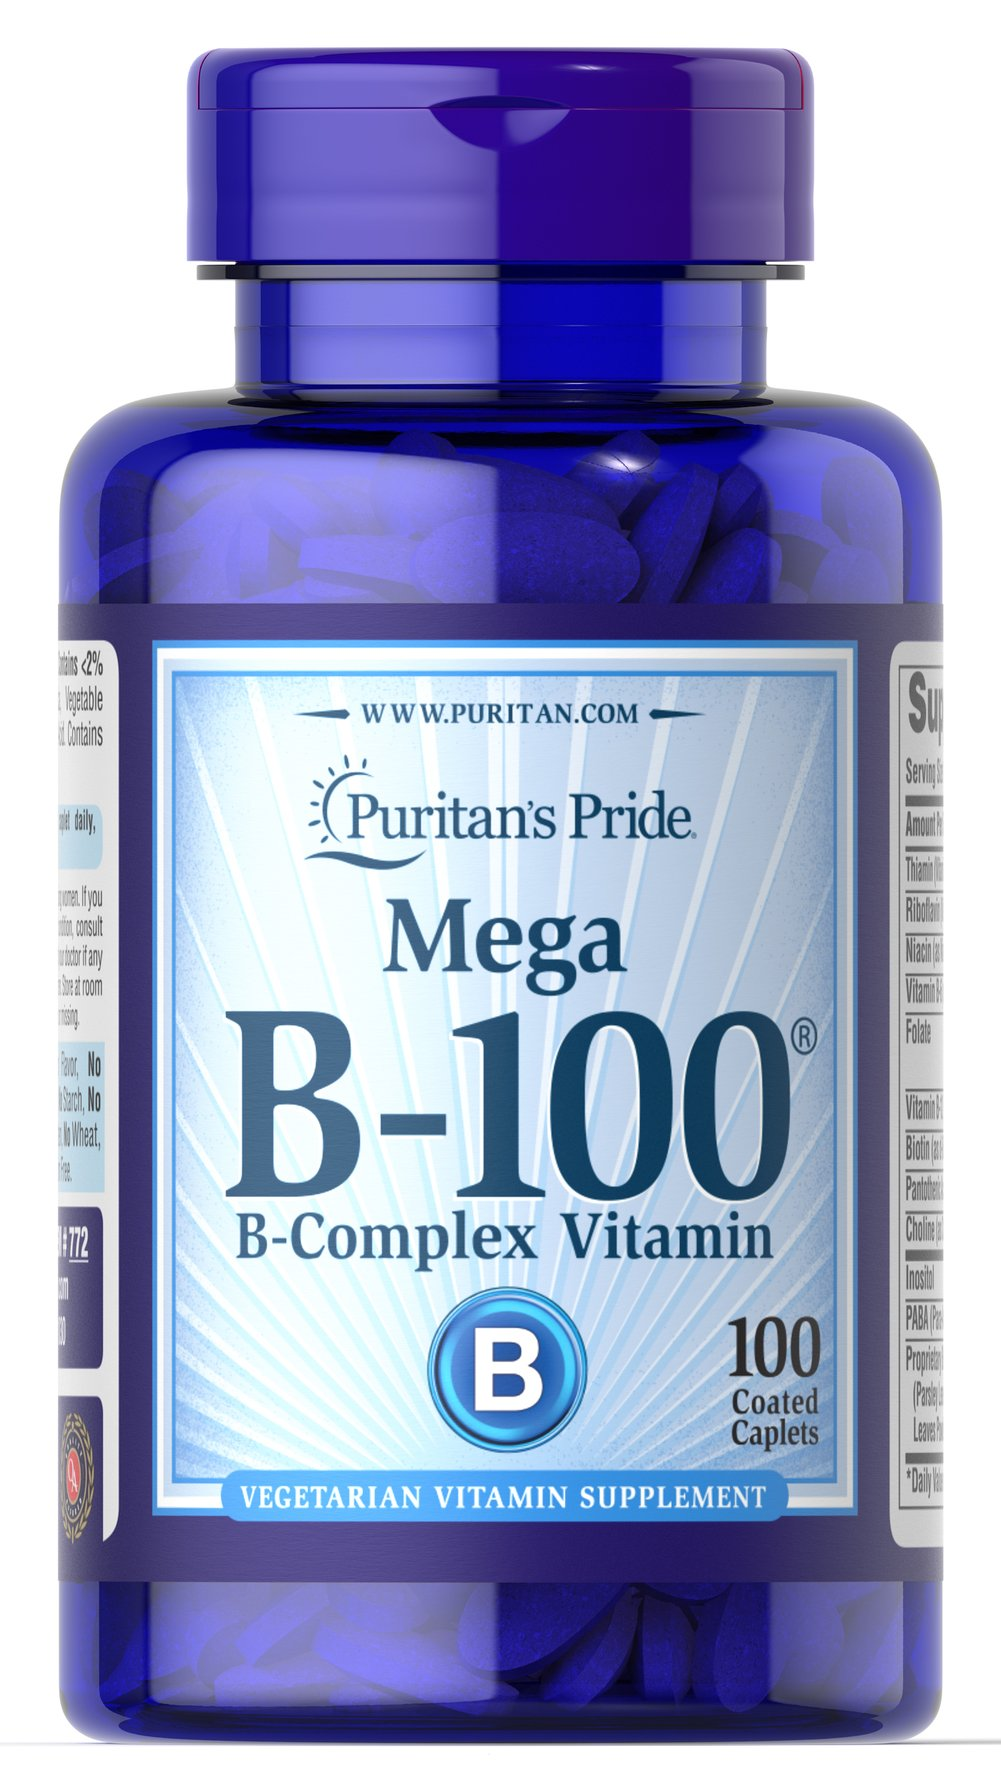 Vitamin B-100® Complex <p>The Vitamin B-100 Complex is made up of several vitamins that work well together to support nervous system health.** B Complex vitamins also promote energy metabolism.** Each nutrient in the B Complex performs a unique role in maintaining proper metabolic functioning and is essential for well being.**</p>  <p>This product delivers B-1, B-2, Niacin, B-6, Inositol, PABA, Pantothenic Acid and Choline, as well B-12, Biotin and Folic Acid.</p> 10